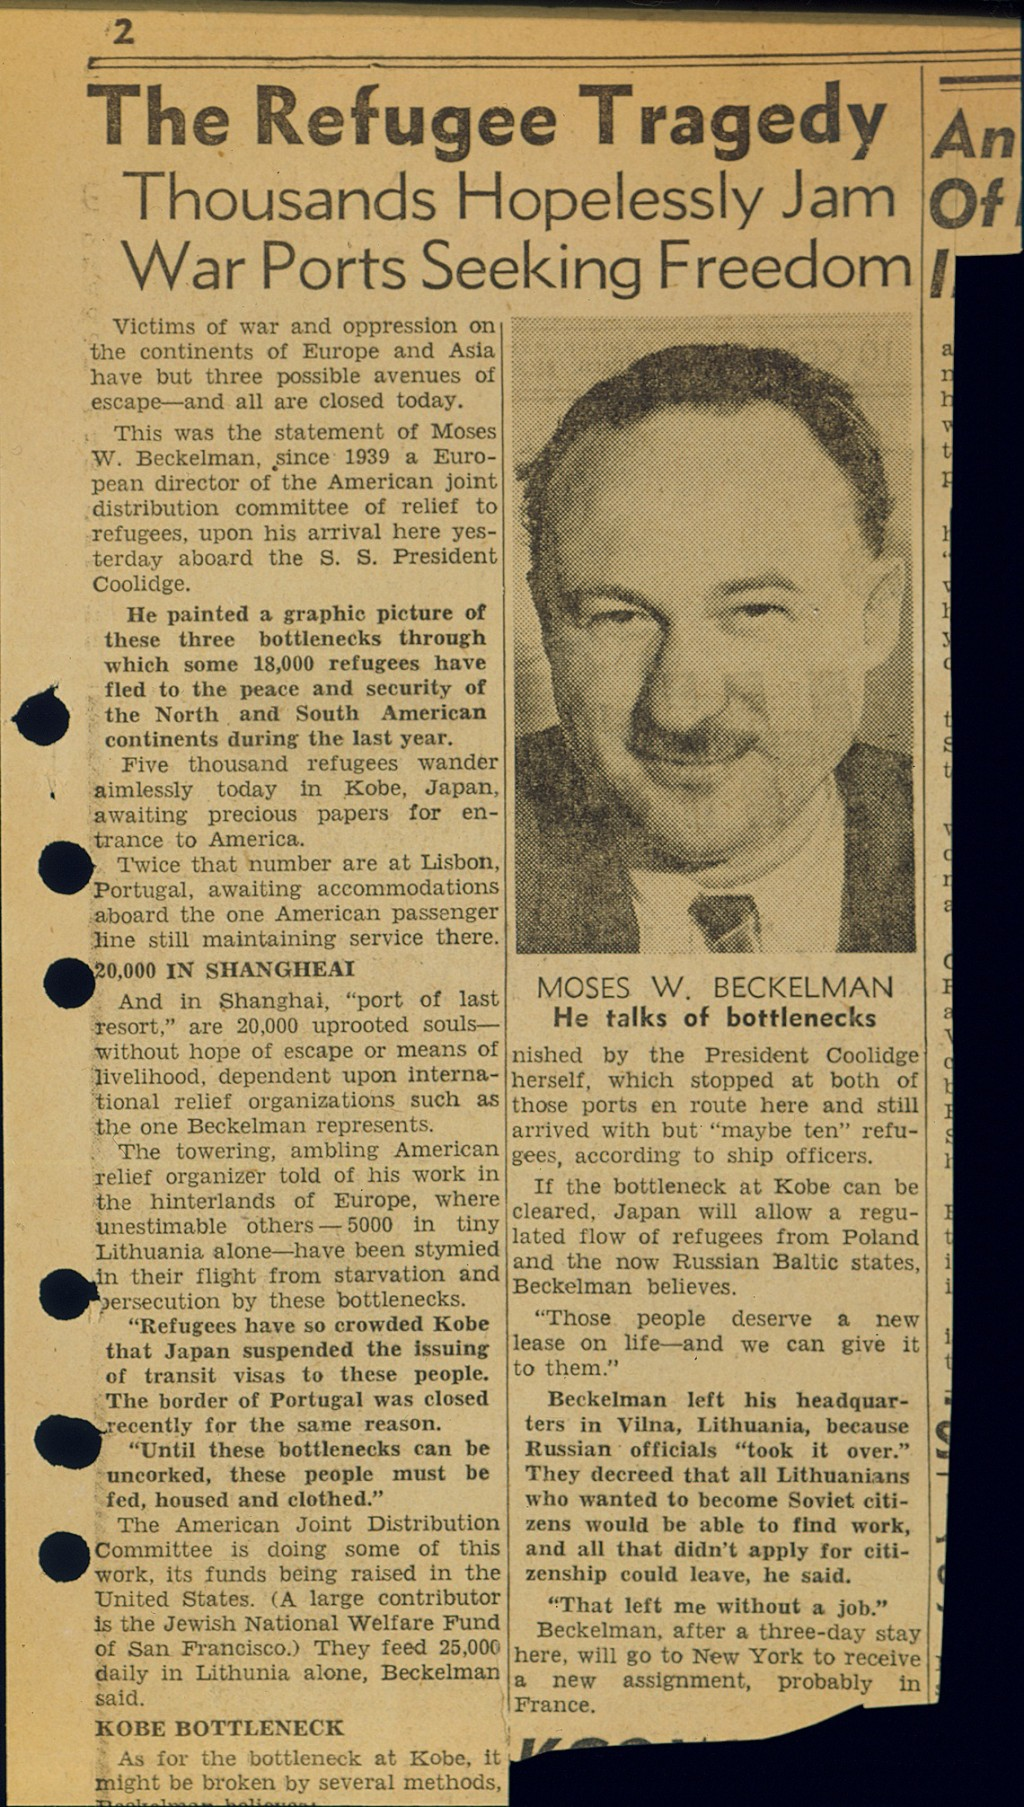 "<p>San Francisco Chronicle newspaper article titled ""The Refugee Tragedy."" The article was based on an interview with Moses Beckelman of the American Jewish Joint Distribution Committee, an aid organization. It discussed the overcrowding of Polish and Lithuanian refugees stranded in Shanghai, Kobe (Japan), and Lisbon (Portugal), all stops en route to North and South America. The primary cause of this bottleneck was a lack of transit and entry visas, a result of most countries closing their borders to immigrants. May 1941. [From the USHMM special exhibition Flight and Rescue.]</p>"